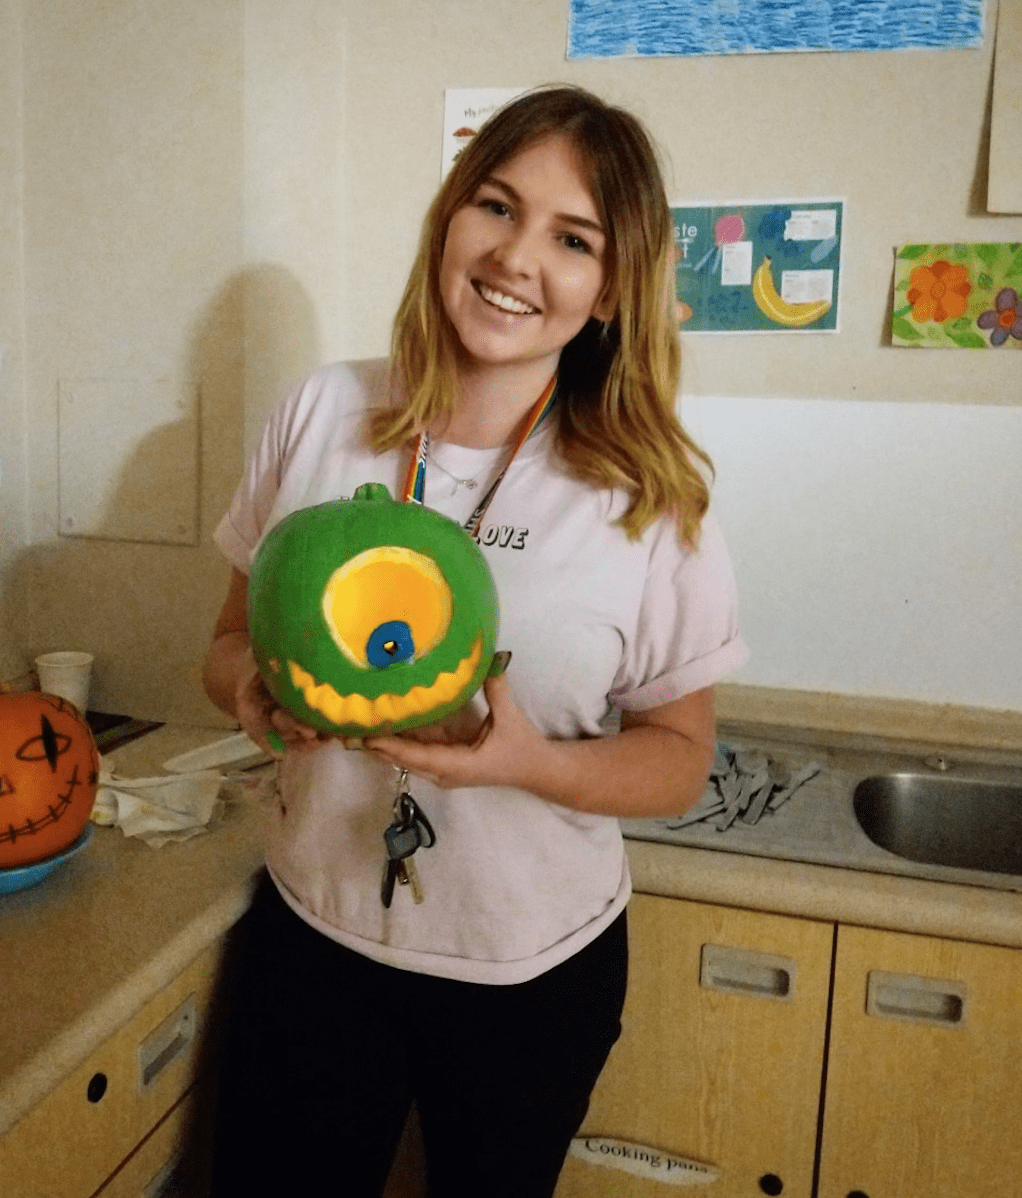 Shannon Edmunds holding a carved pumpkin